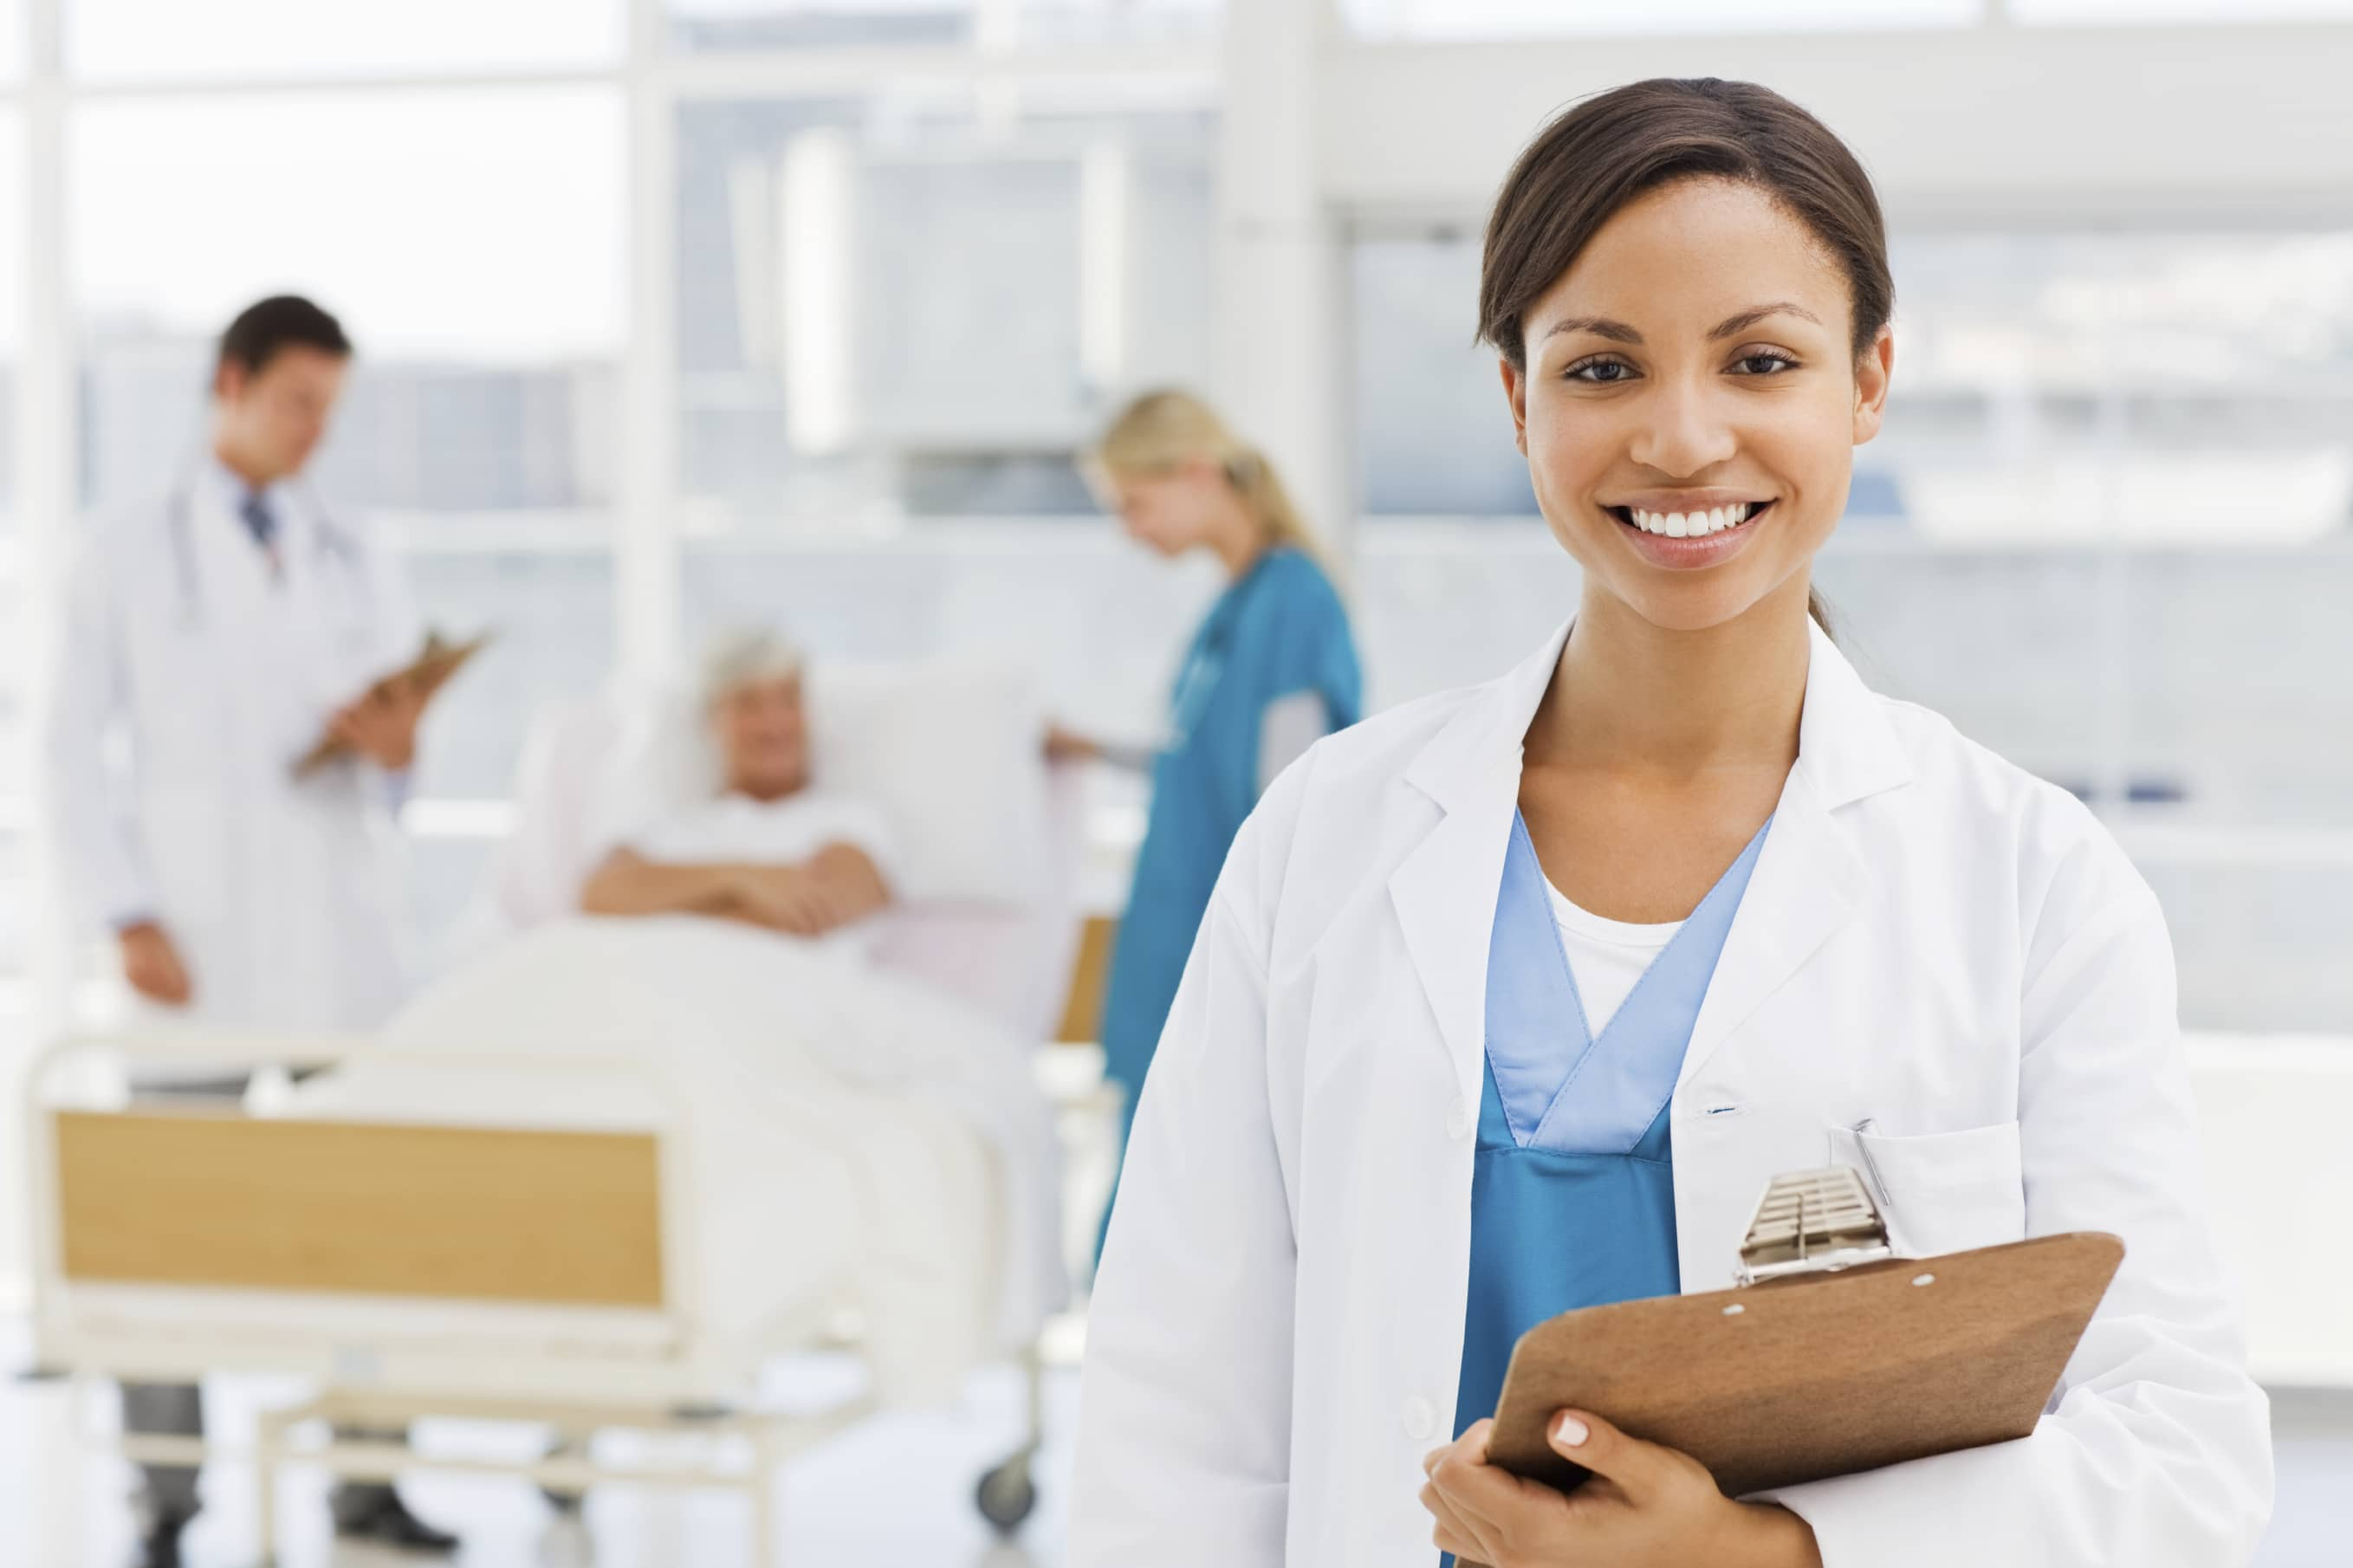 Why A Job As A Nursing Assistant Might Be Right For You